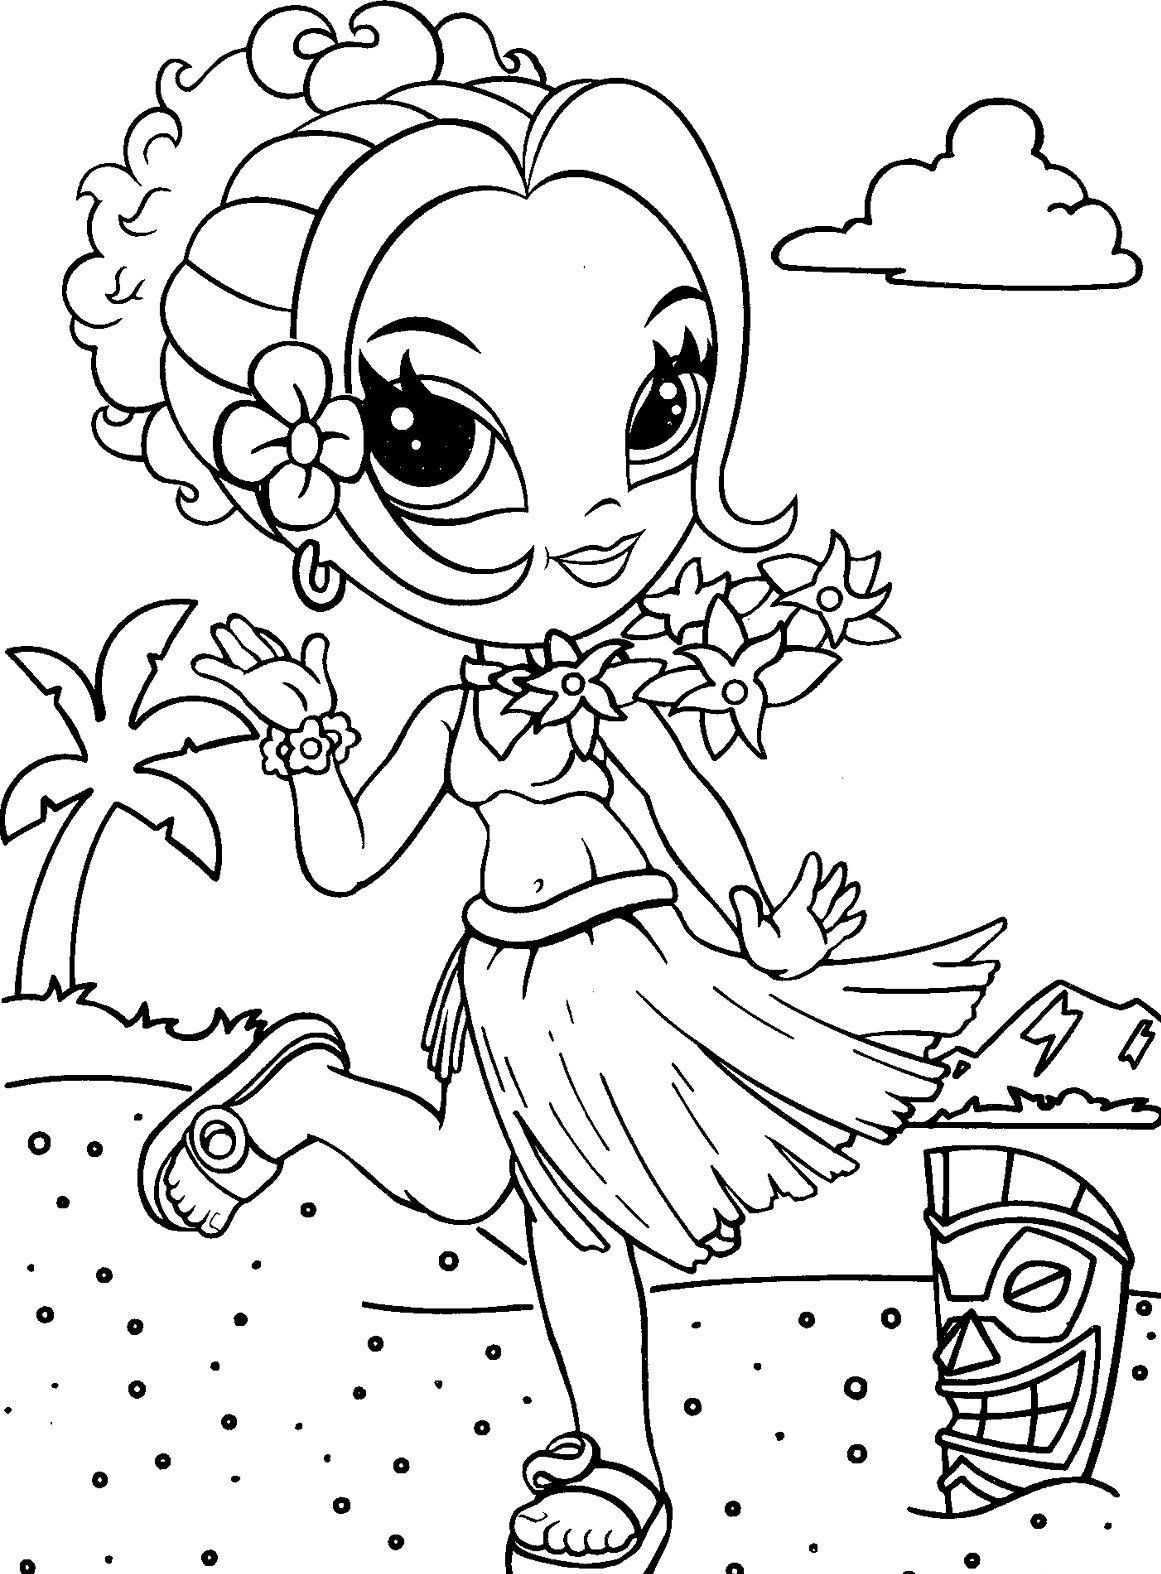 Lisa frank coloring pages to download and print for free